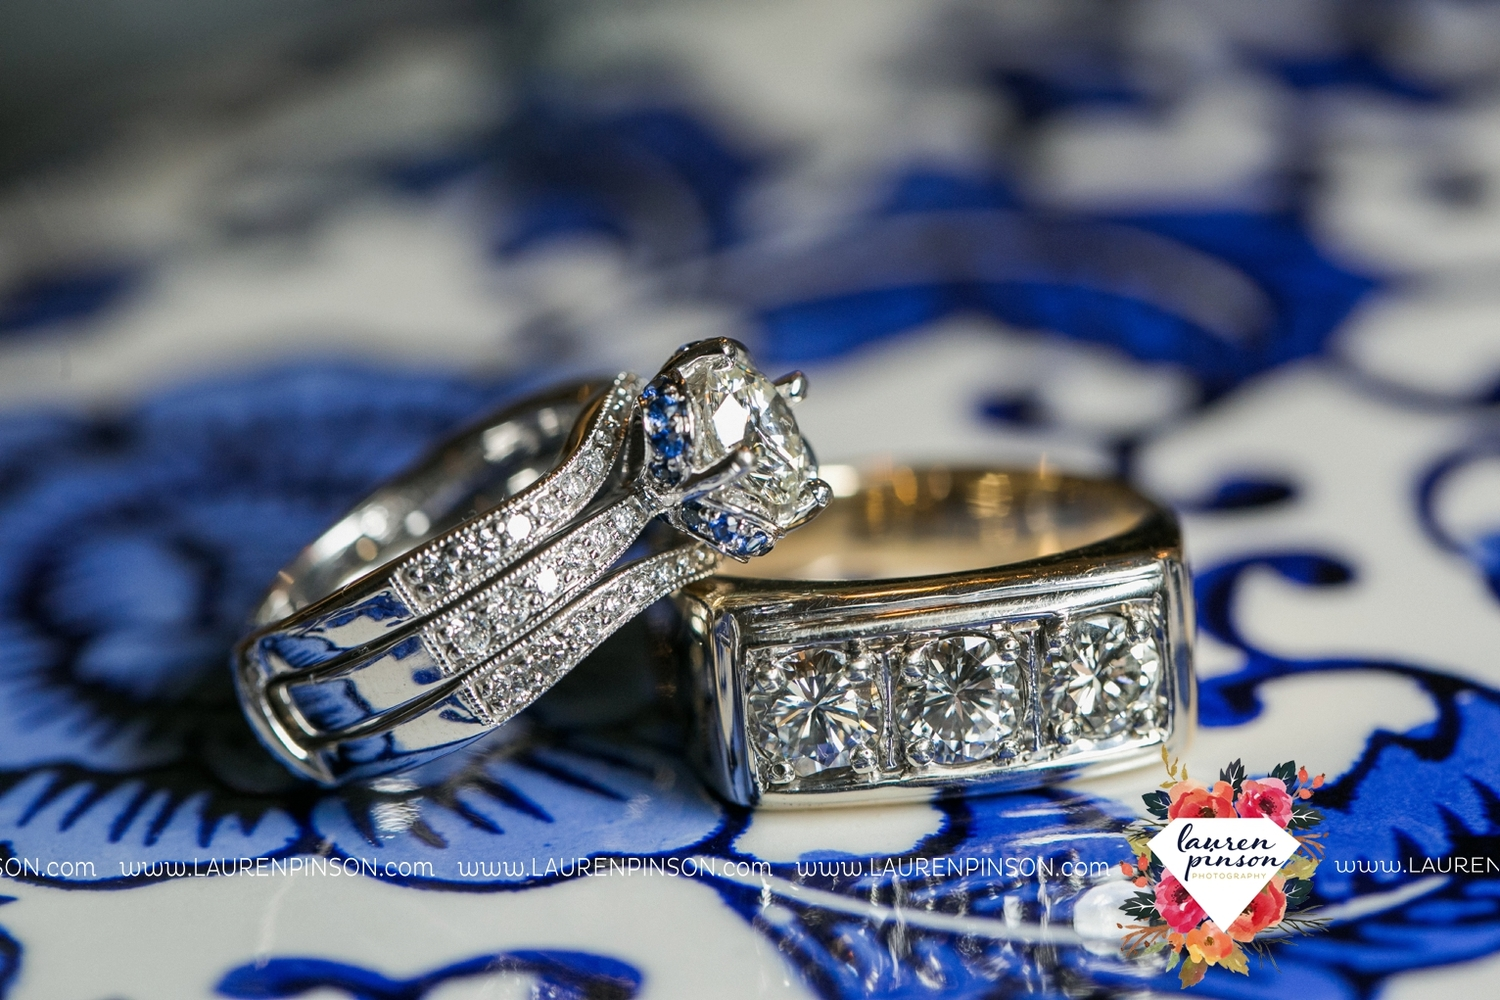 my lost engagement ring insurance and custom designing a new ring - Wedding Ring Insurance